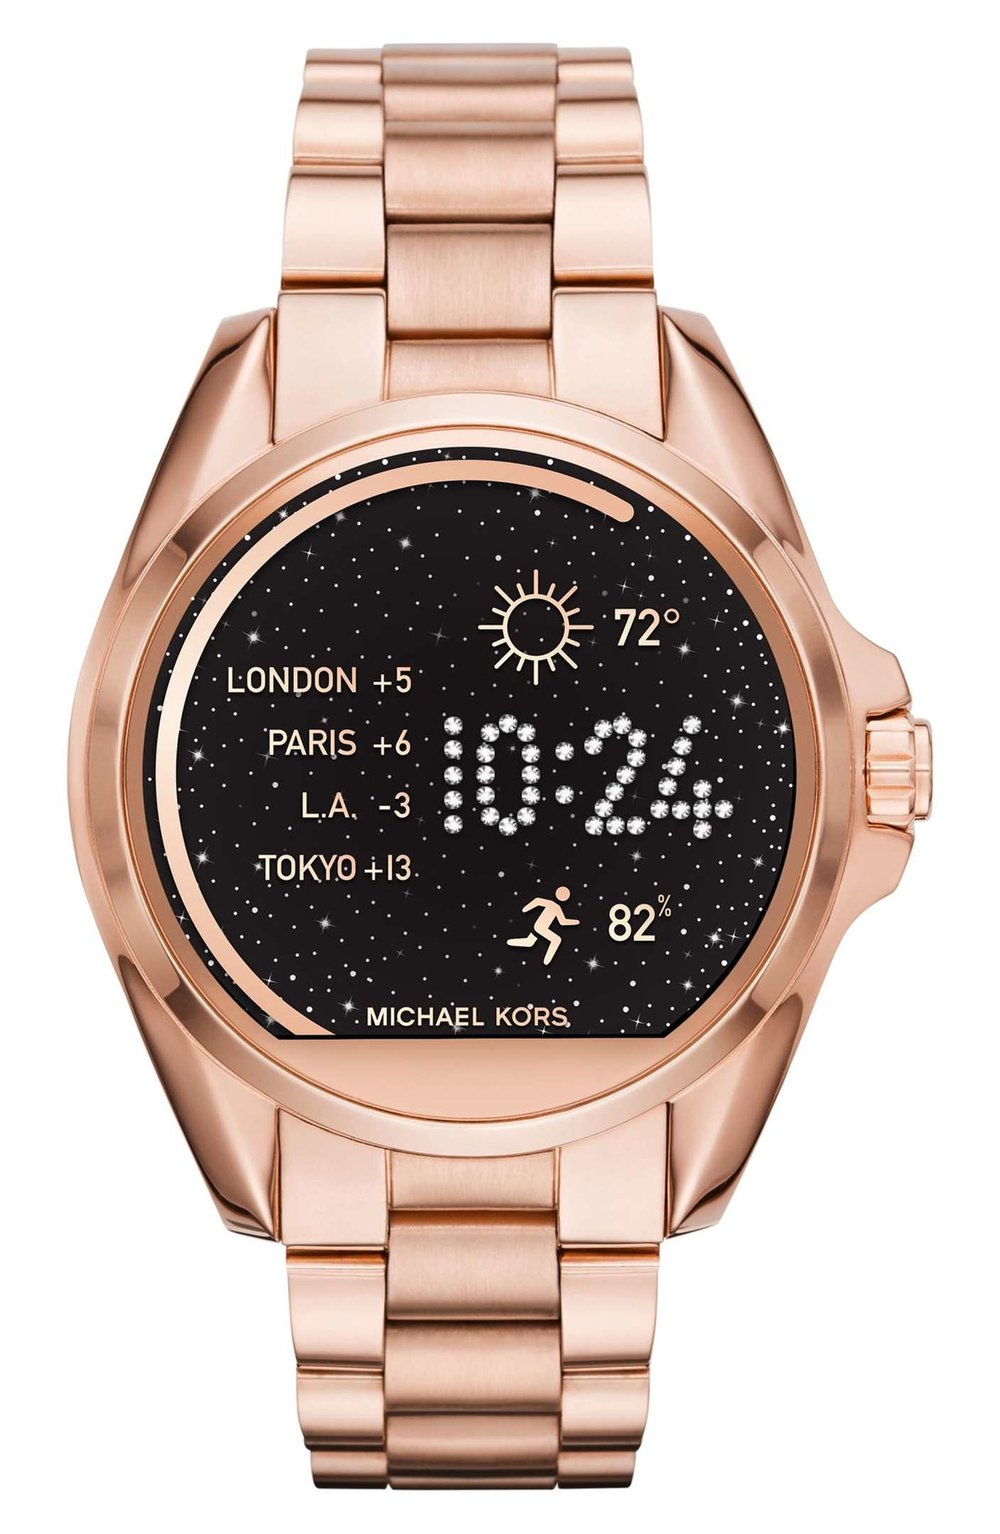 Michael Kors Bradshaw Smart Watch